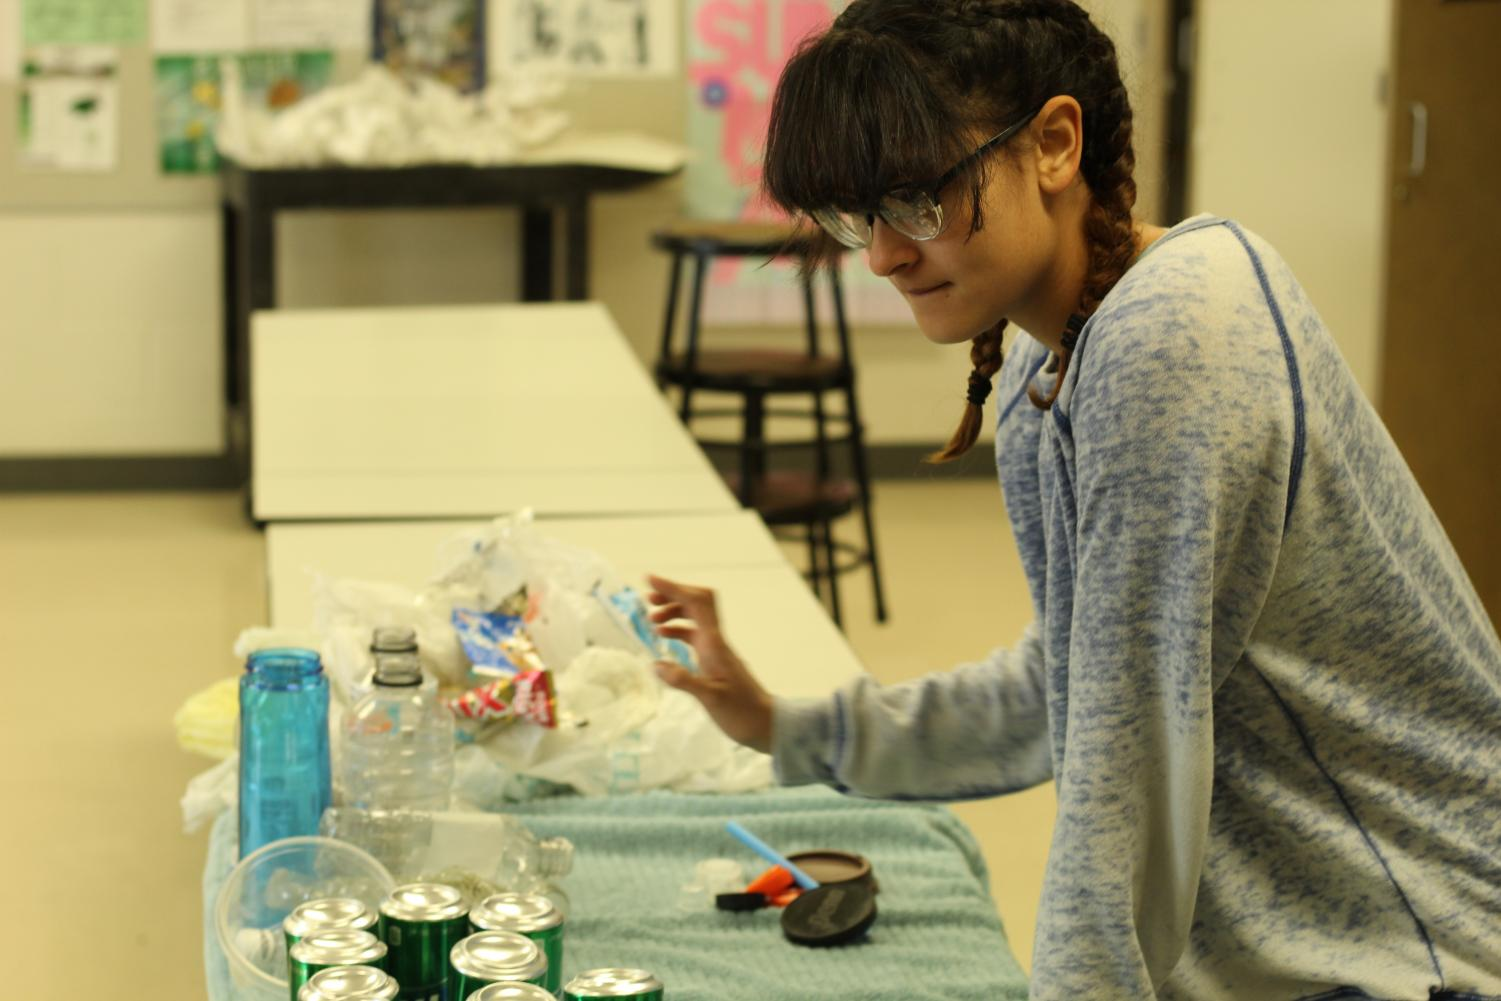 In+art+teacher+Manabu+Takahashi%E2%80%99s+classroom+April+28%2C+freshman+Camilla+Rivera+begins+sorting+the+cleaned+trash+into+categories+for+storage+and+throw+away.+Rivera+preferred+the+sculpture+part+of+the+project.+%E2%80%9CI%E2%80%99m+really+excited+to+build+it+because+cleaning+up+was+a+little+bit+hard%2C%E2%80%9D+said+Rivera.